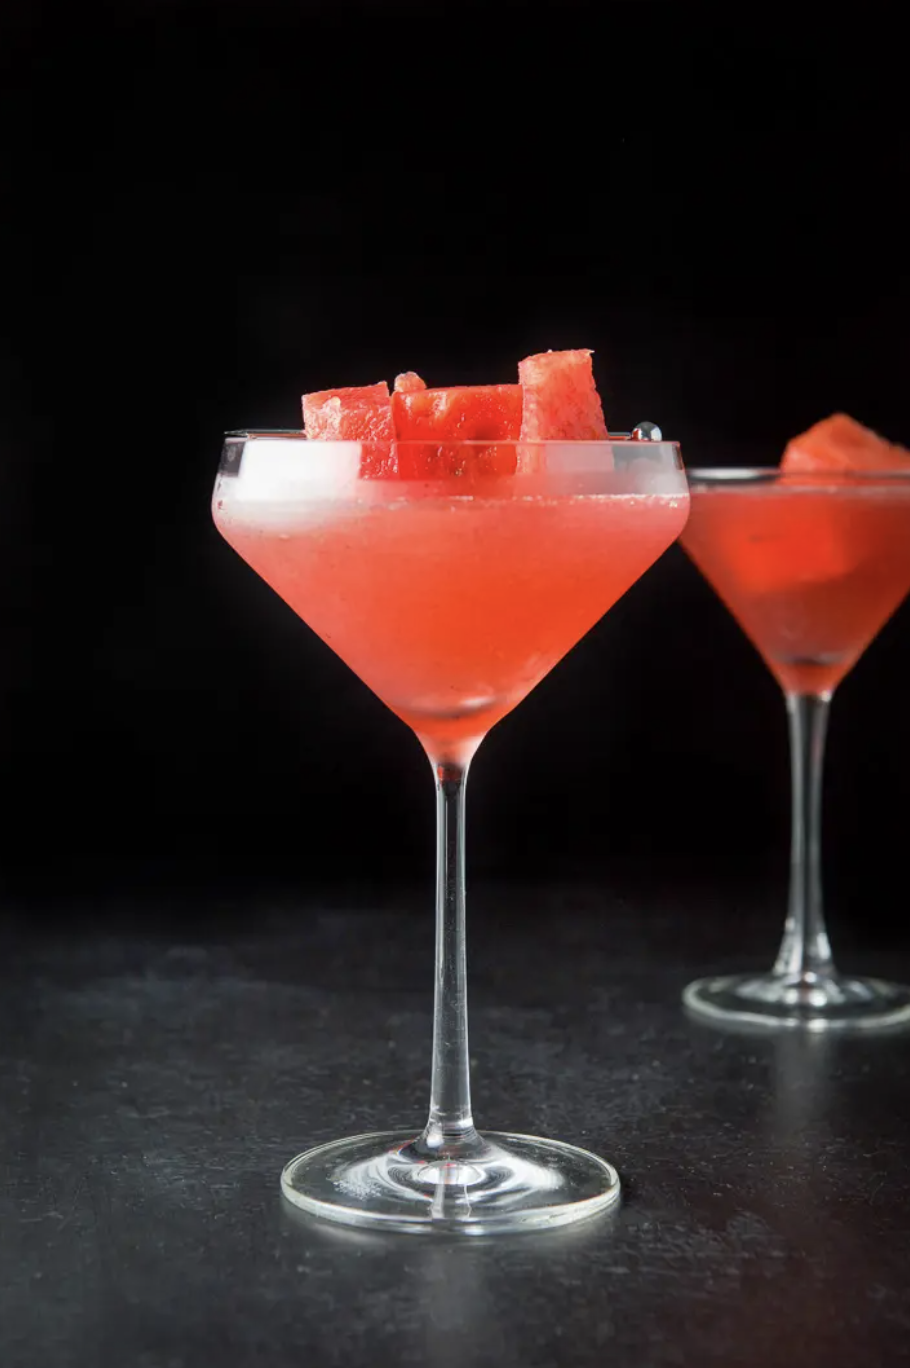 """<p>If you're feeling a little fancy, this watermelon-infused cosmopolitan is for you. Garnish with melon cubes for a pretty effect.</p><p><strong>Get the recipe at <a href=""""https://dishesdelish.com/watermelon-cosmo/"""" rel=""""nofollow noopener"""" target=""""_blank"""" data-ylk=""""slk:Dishes Delish"""" class=""""link rapid-noclick-resp"""">Dishes Delish</a>. </strong></p><p><strong><a class=""""link rapid-noclick-resp"""" href=""""https://go.redirectingat.com?id=74968X1596630&url=https%3A%2F%2Fwww.walmart.com%2Fsearch%2F%3Fquery%3Dmartini%2Bglasses&sref=https%3A%2F%2Fwww.thepioneerwoman.com%2Ffood-cooking%2Fmeals-menus%2Fg32147587%2Fwatermelon-drink-recipes%2F"""" rel=""""nofollow noopener"""" target=""""_blank"""" data-ylk=""""slk:SHOP MARTINI GLASSES"""">SHOP MARTINI GLASSES</a><br></strong></p>"""